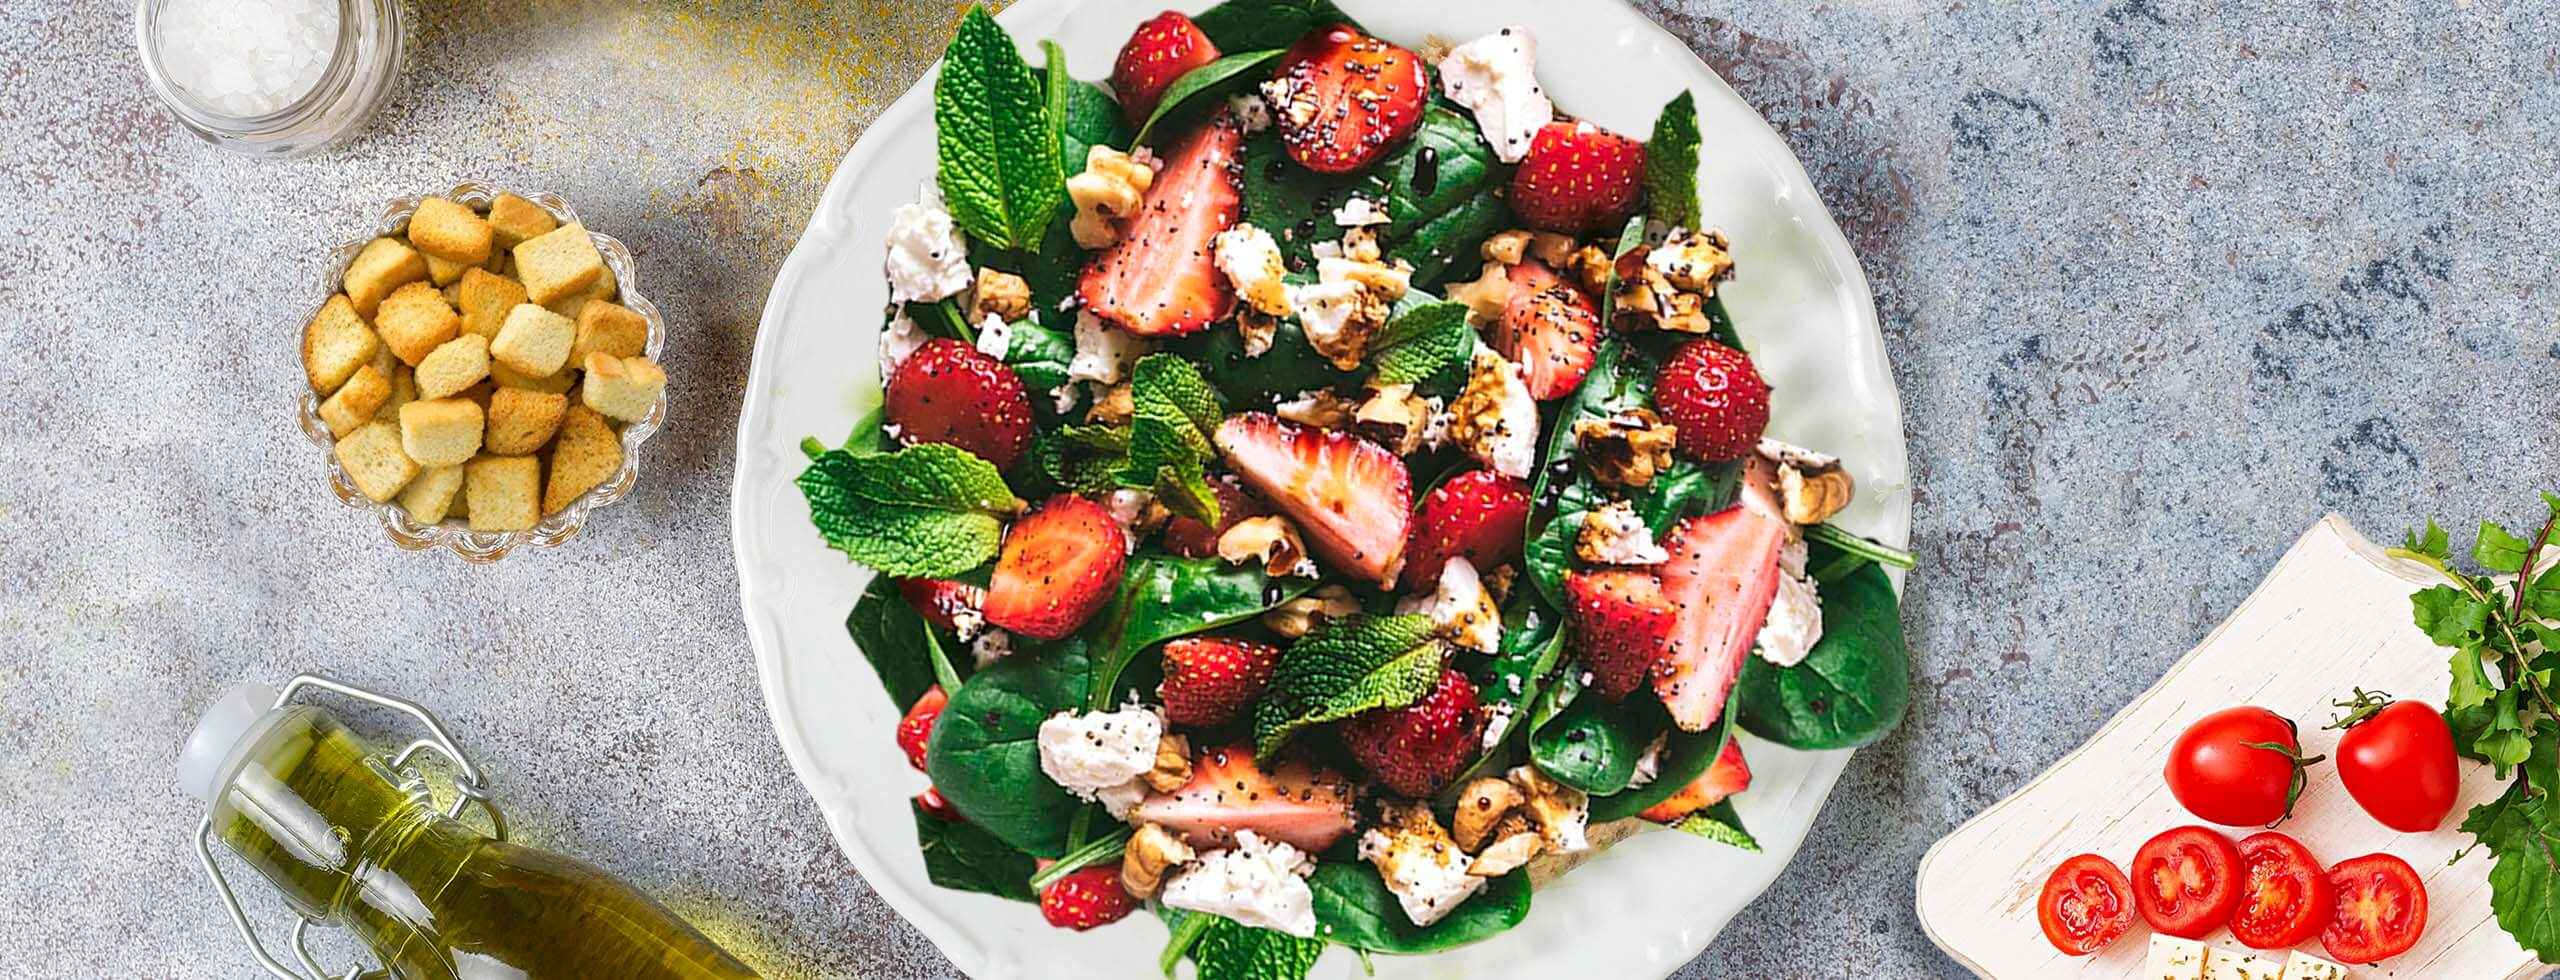 Brighten Up Your Winter With A Grilled Chicken Strawberry Salad